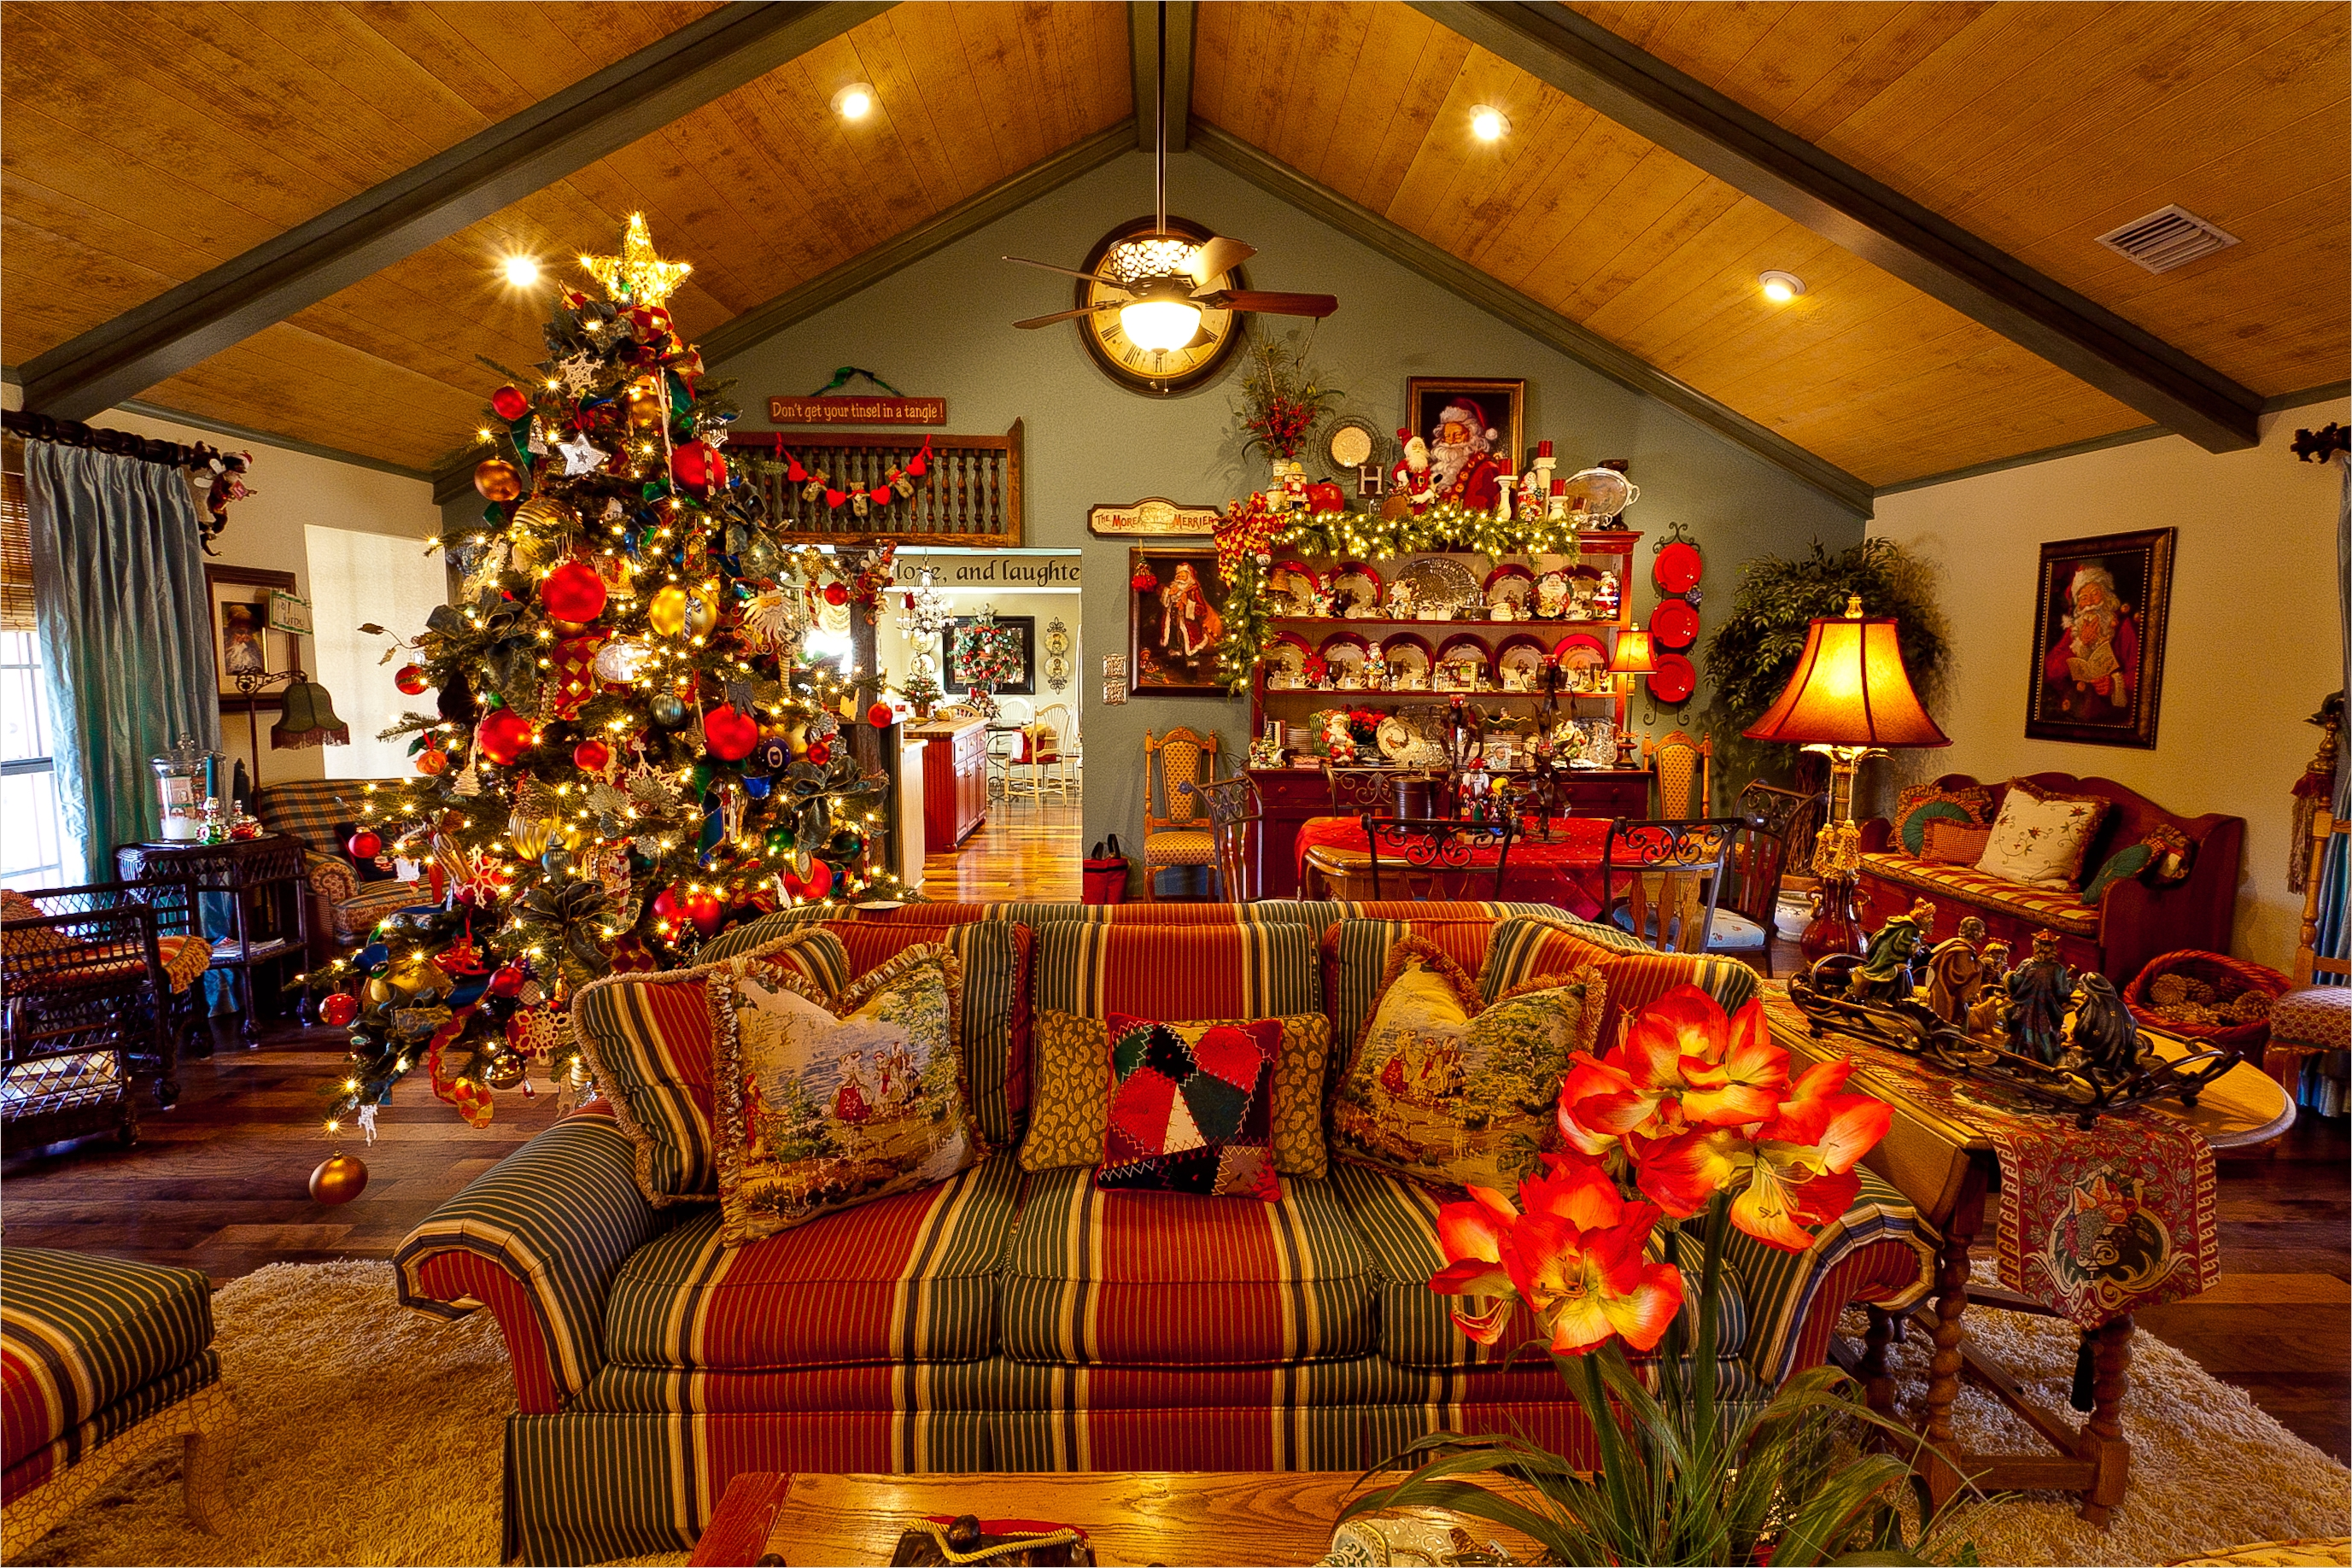 42 Stunning Country Christmas Centerpieces Ideas Ideas 36 Show Me A Country French Home Dressed for Christmas 6